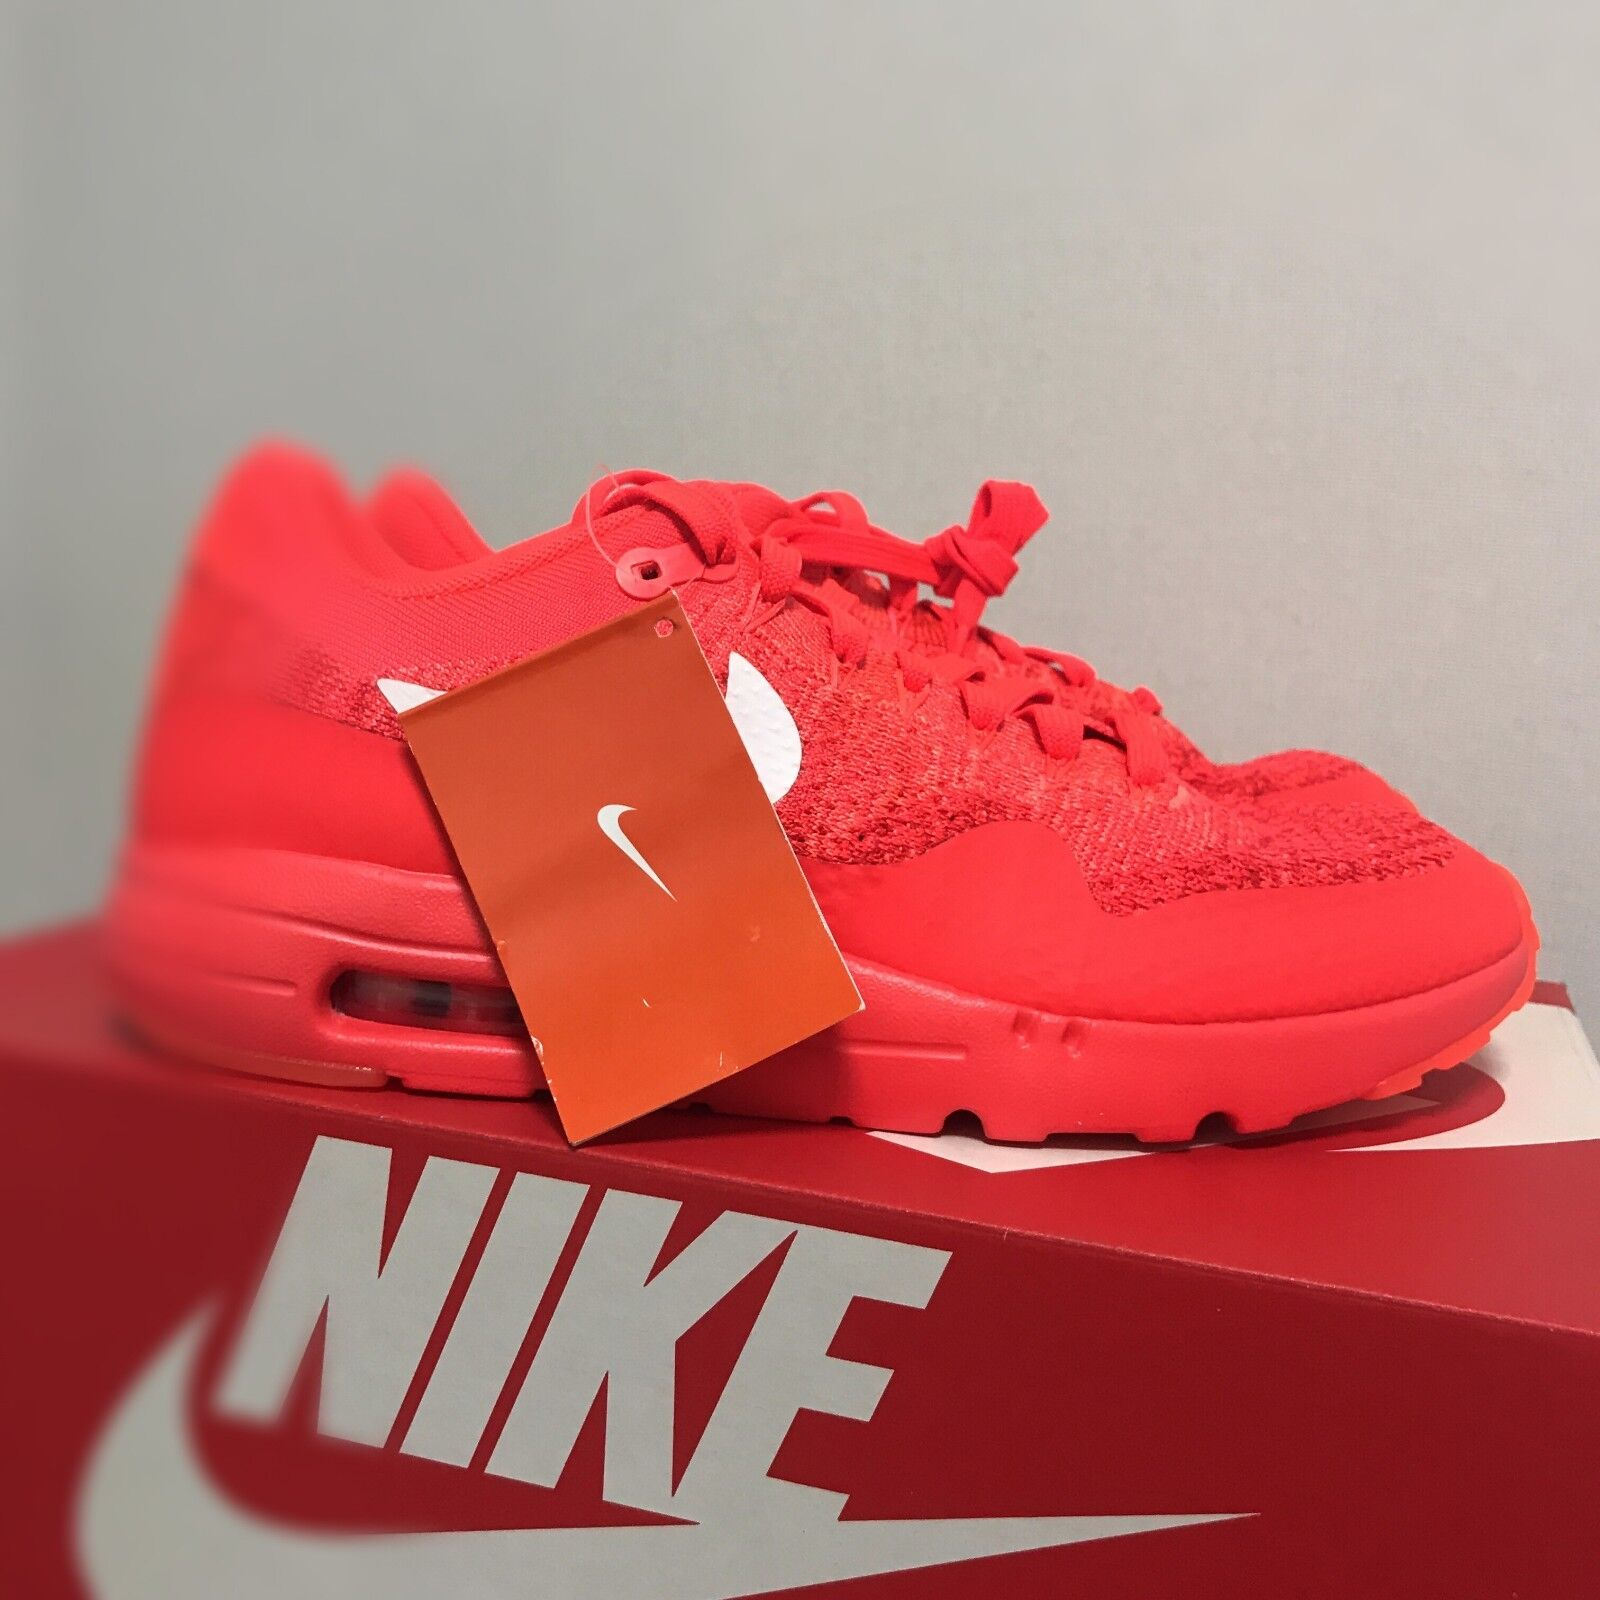 Nike Air Max 1 Ultra Flyknit  shoes orange 843384-601 Size 10 Limited